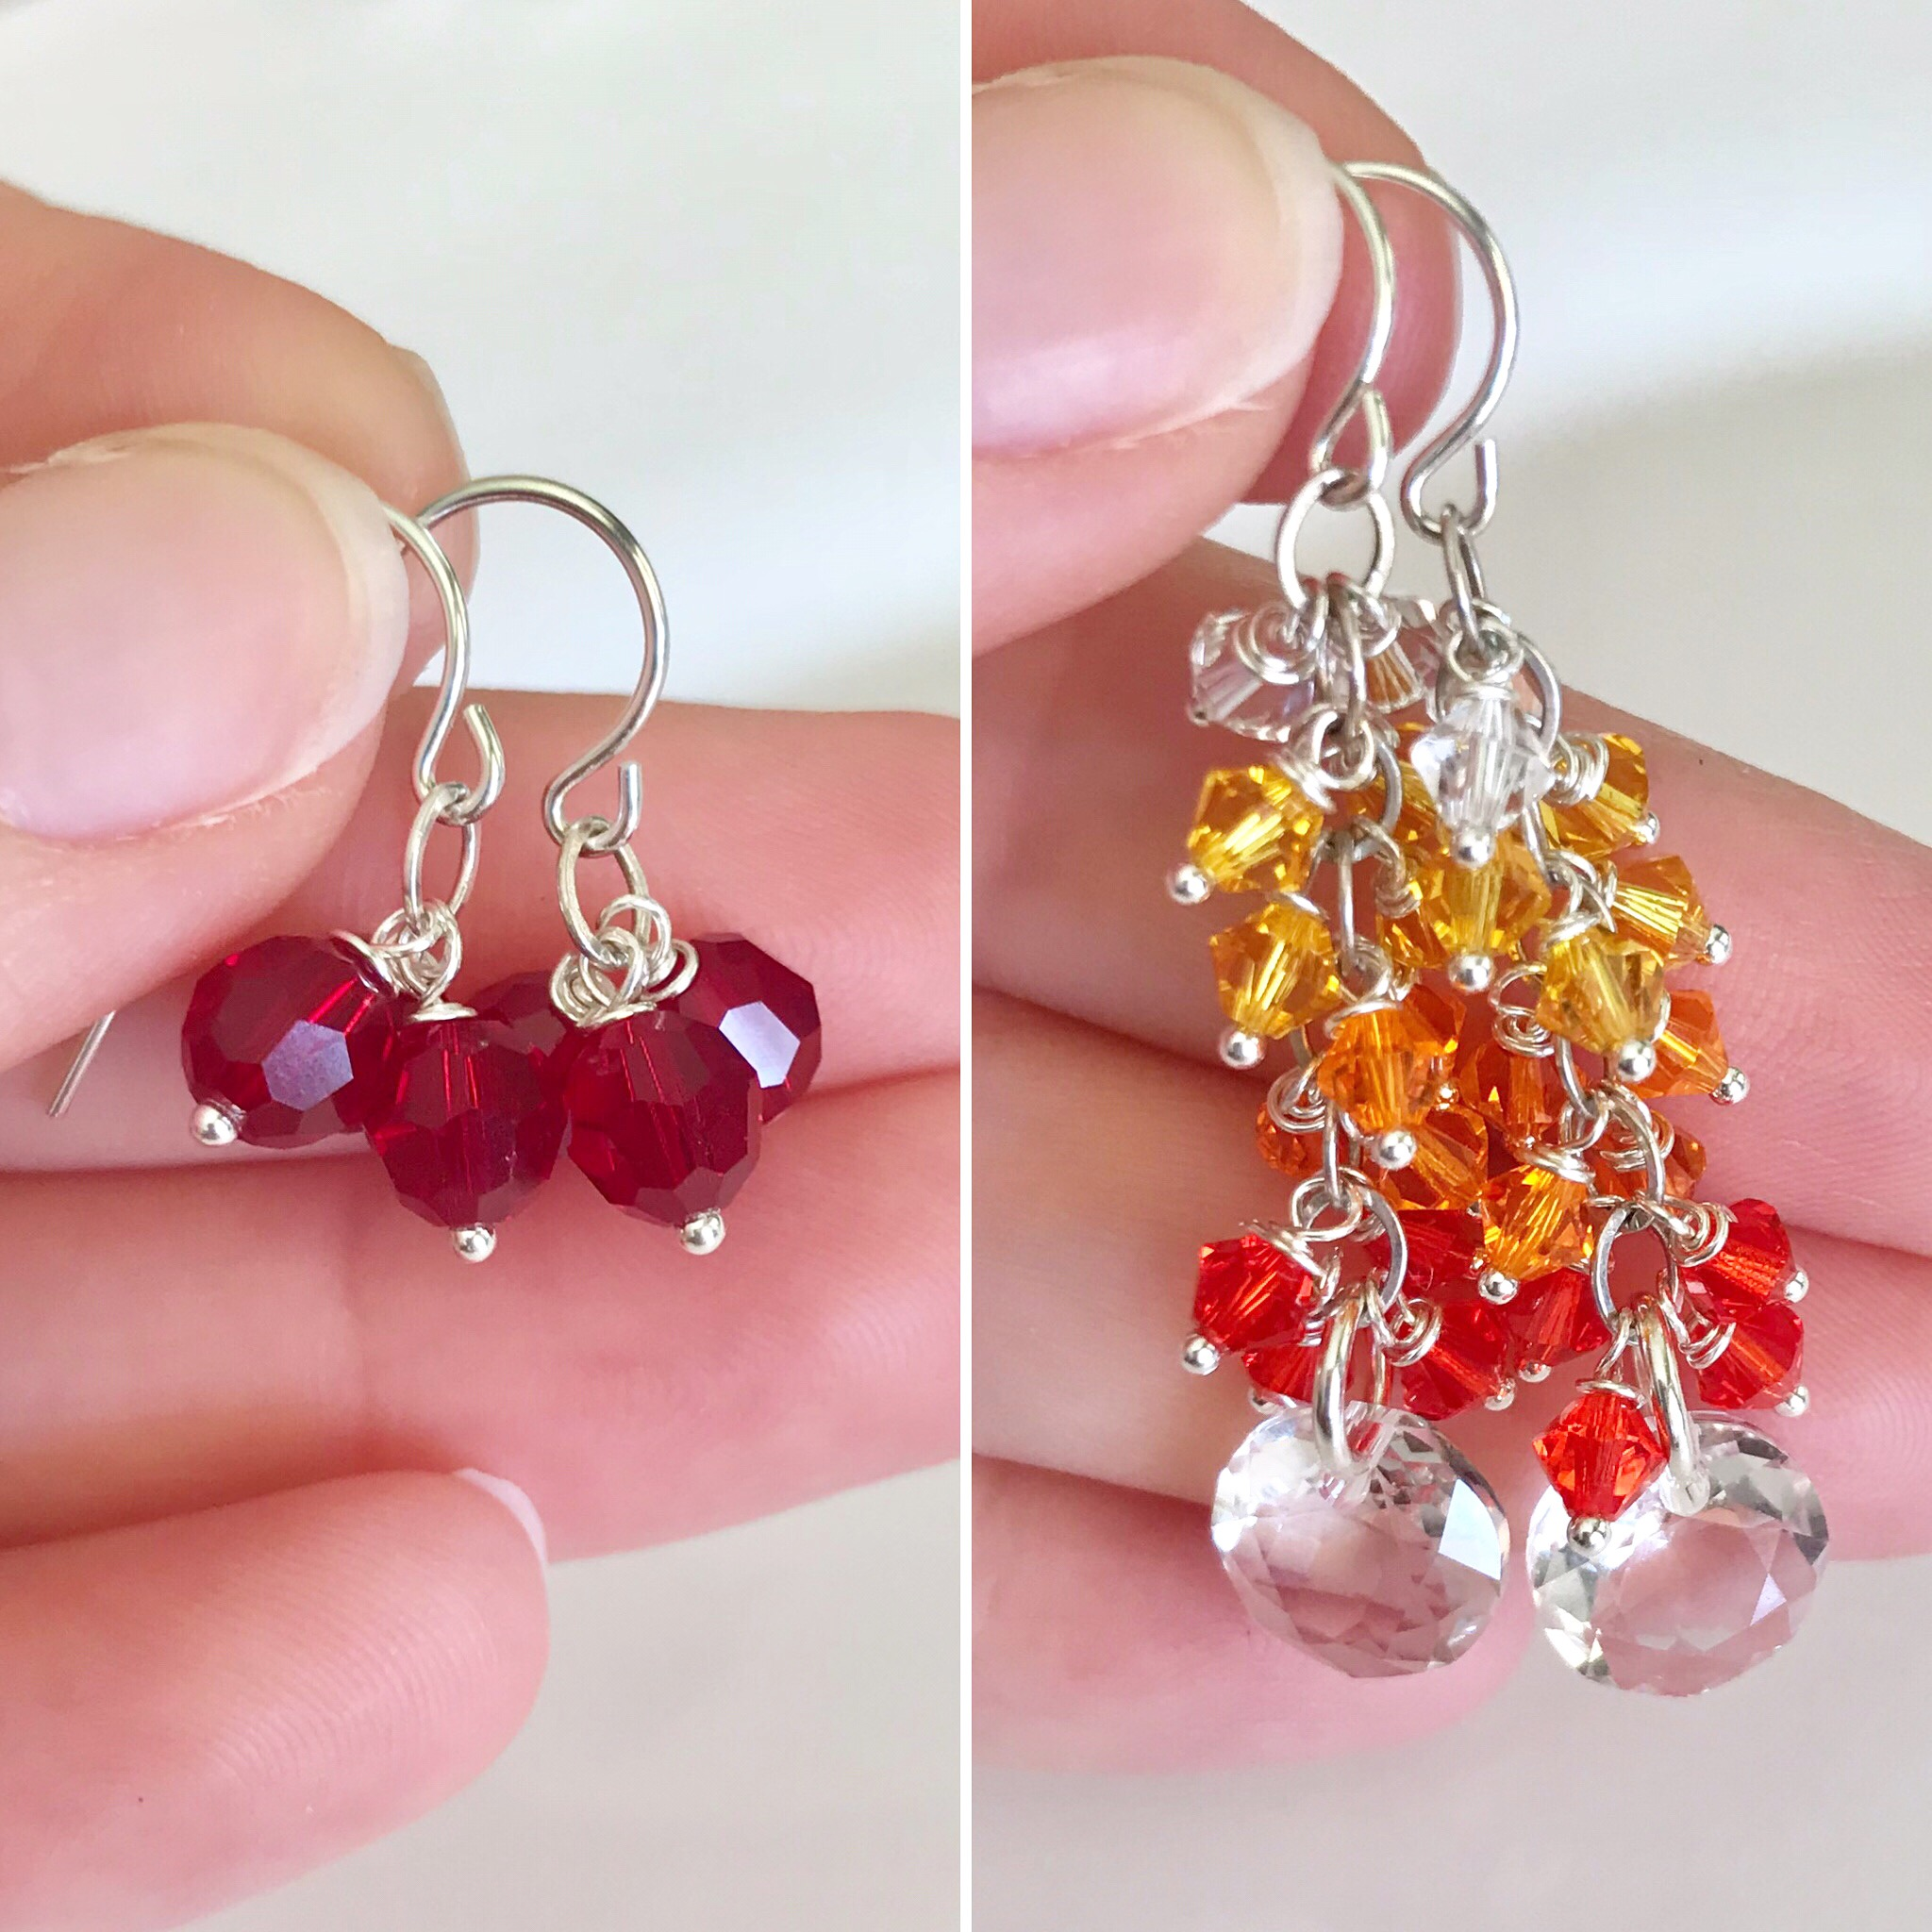 Directly From Austria - Most of our designs feature Swarovski® crystals, which are designed and made in Austria. These are the finest quality crystals in the world.